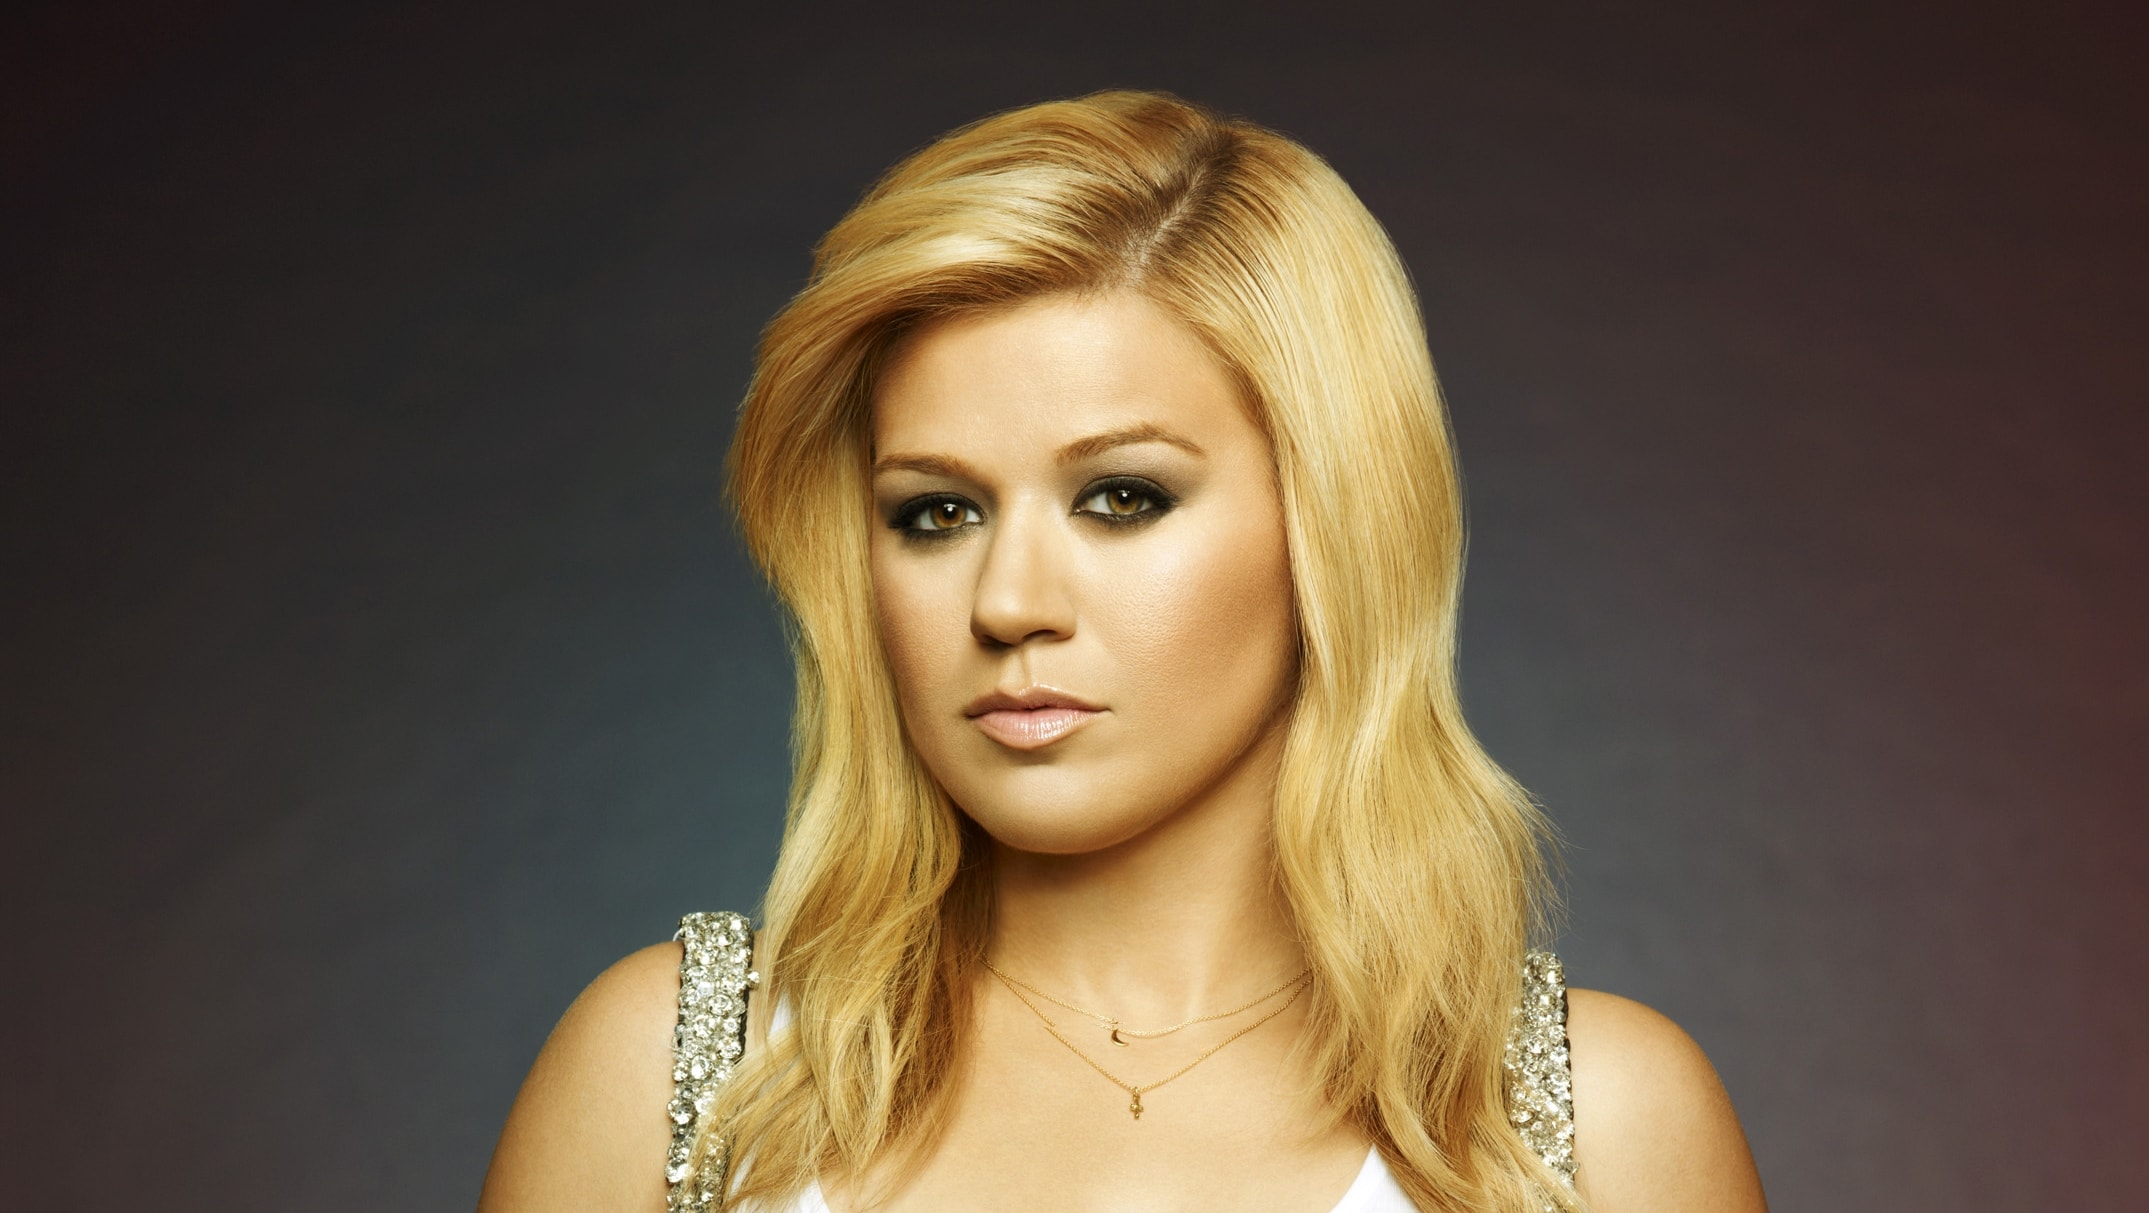 Kelly Clarkson HQ wallpapers